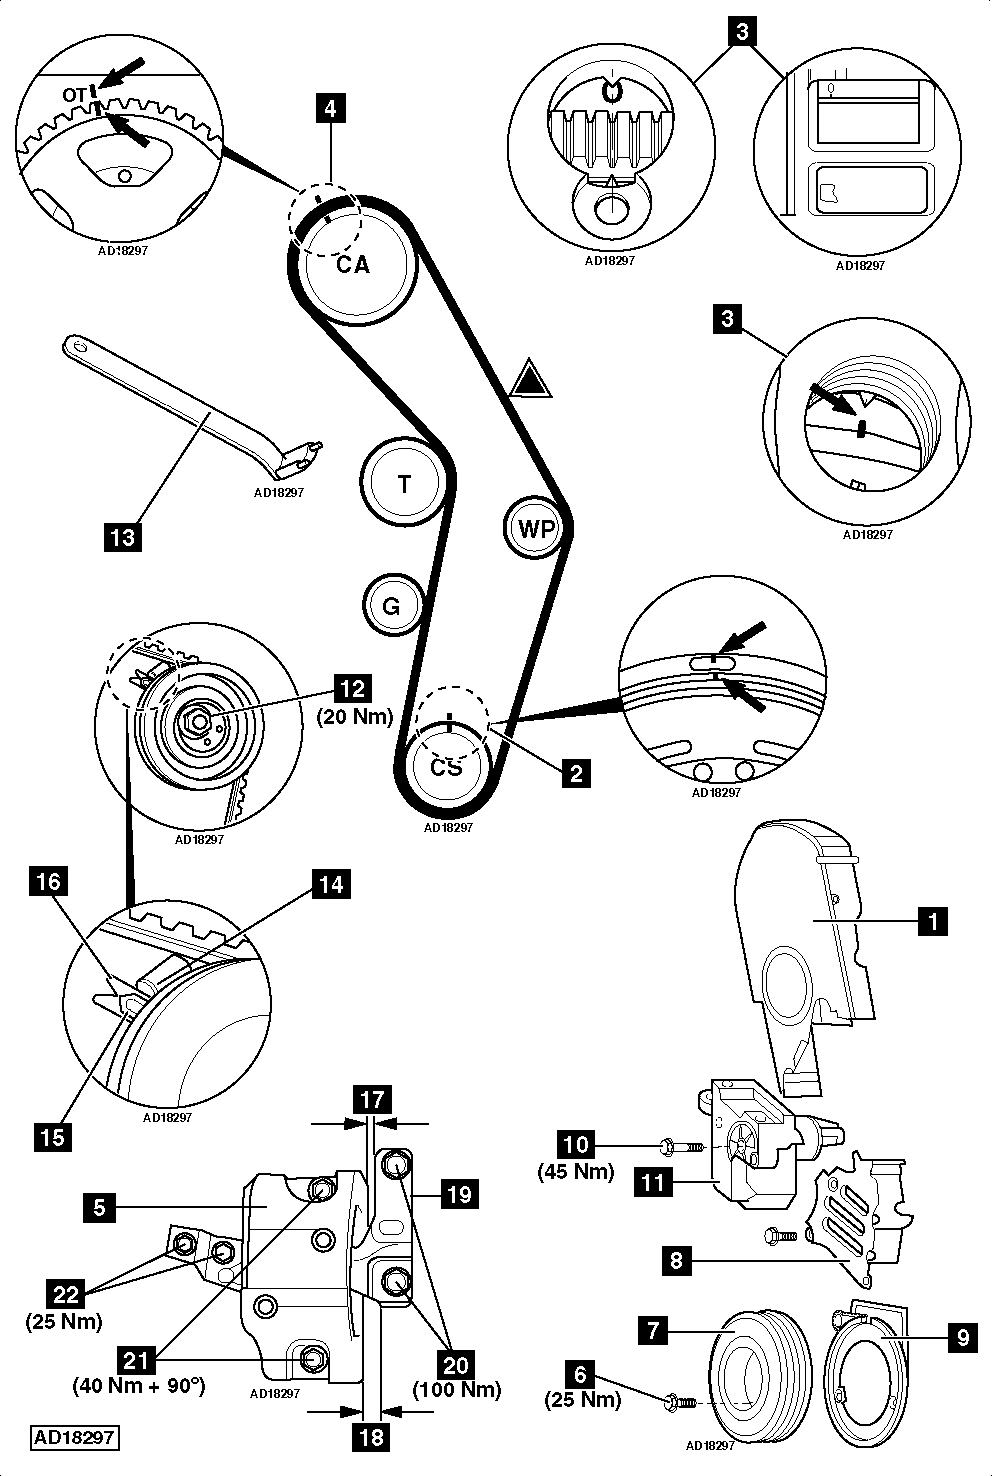 Vw 2 0 L Engine Belt Diagram Wiring And Ebooks Library Rh 17 Budoshop4you De 2002 Ford Focus